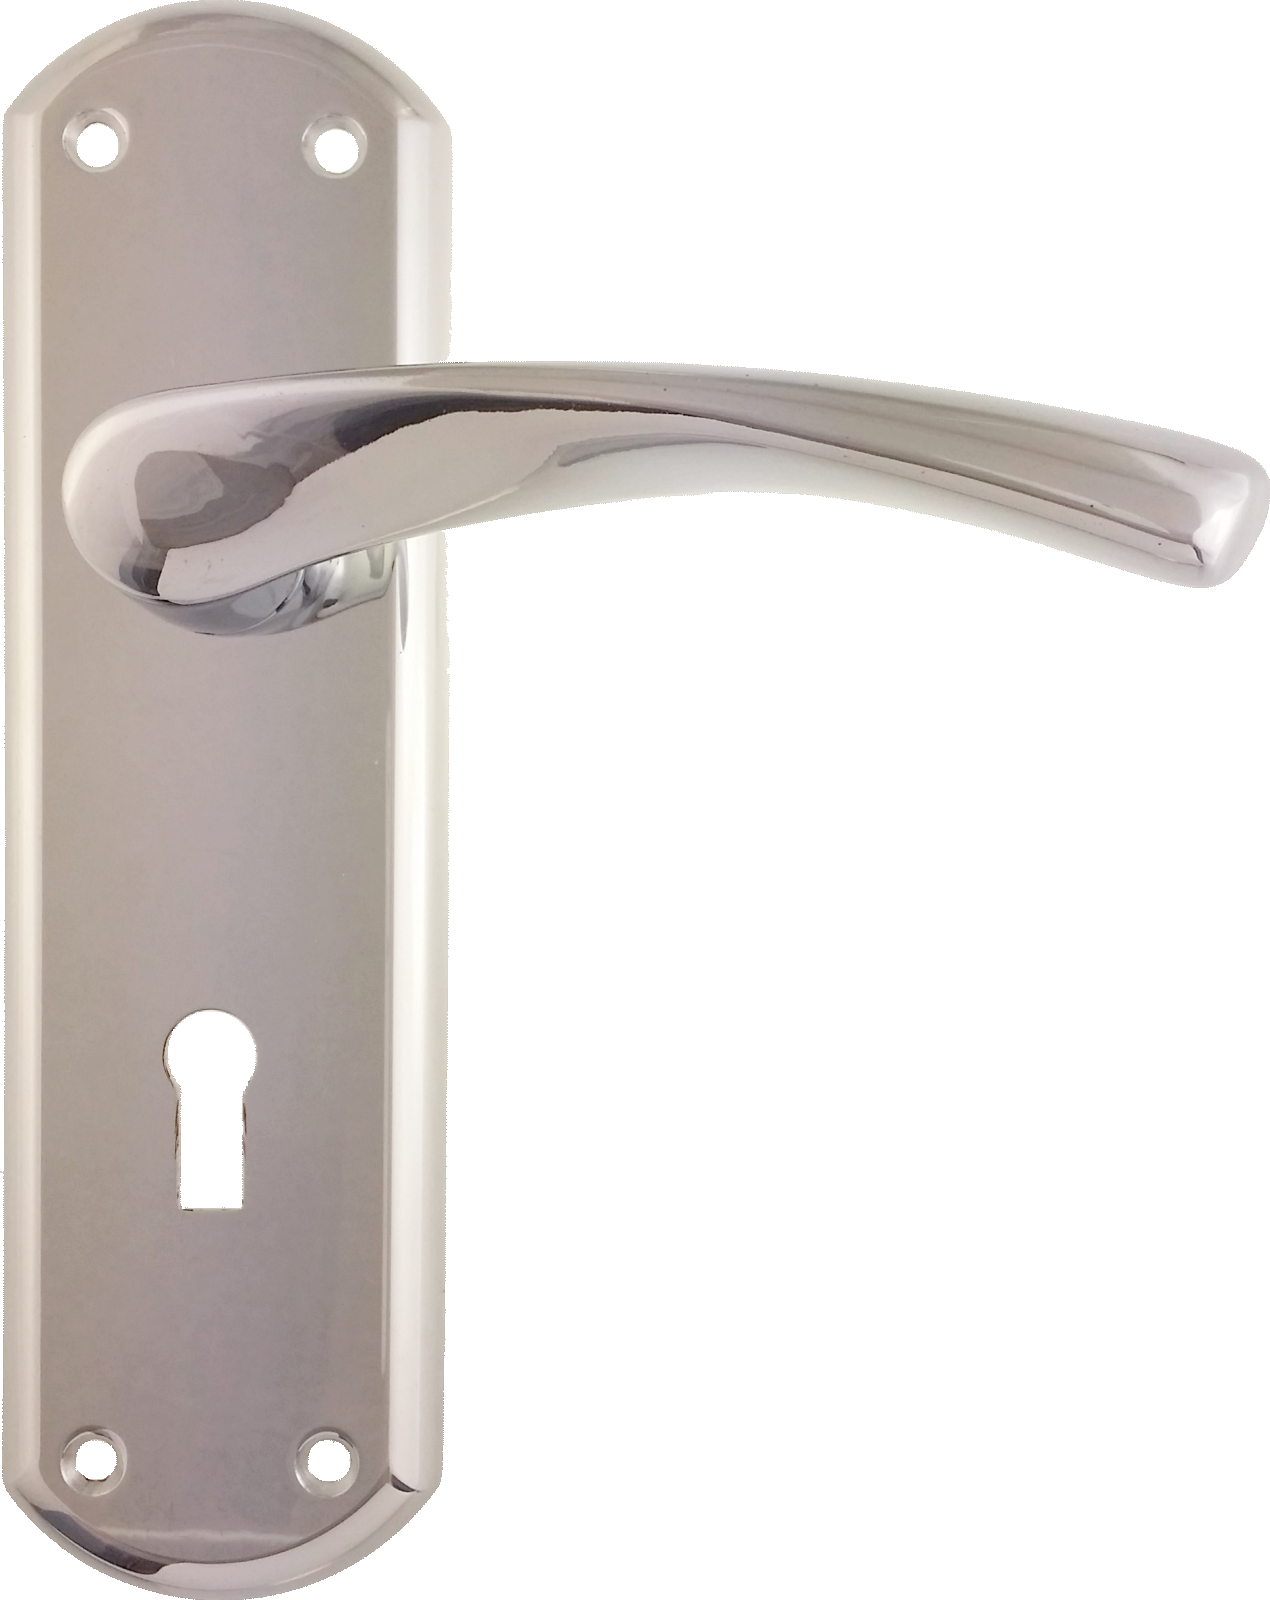 Kitchen Door Handles Chrome Bertelli Garda Sash Lock Door Handle Set Polioshed Chrome Lock